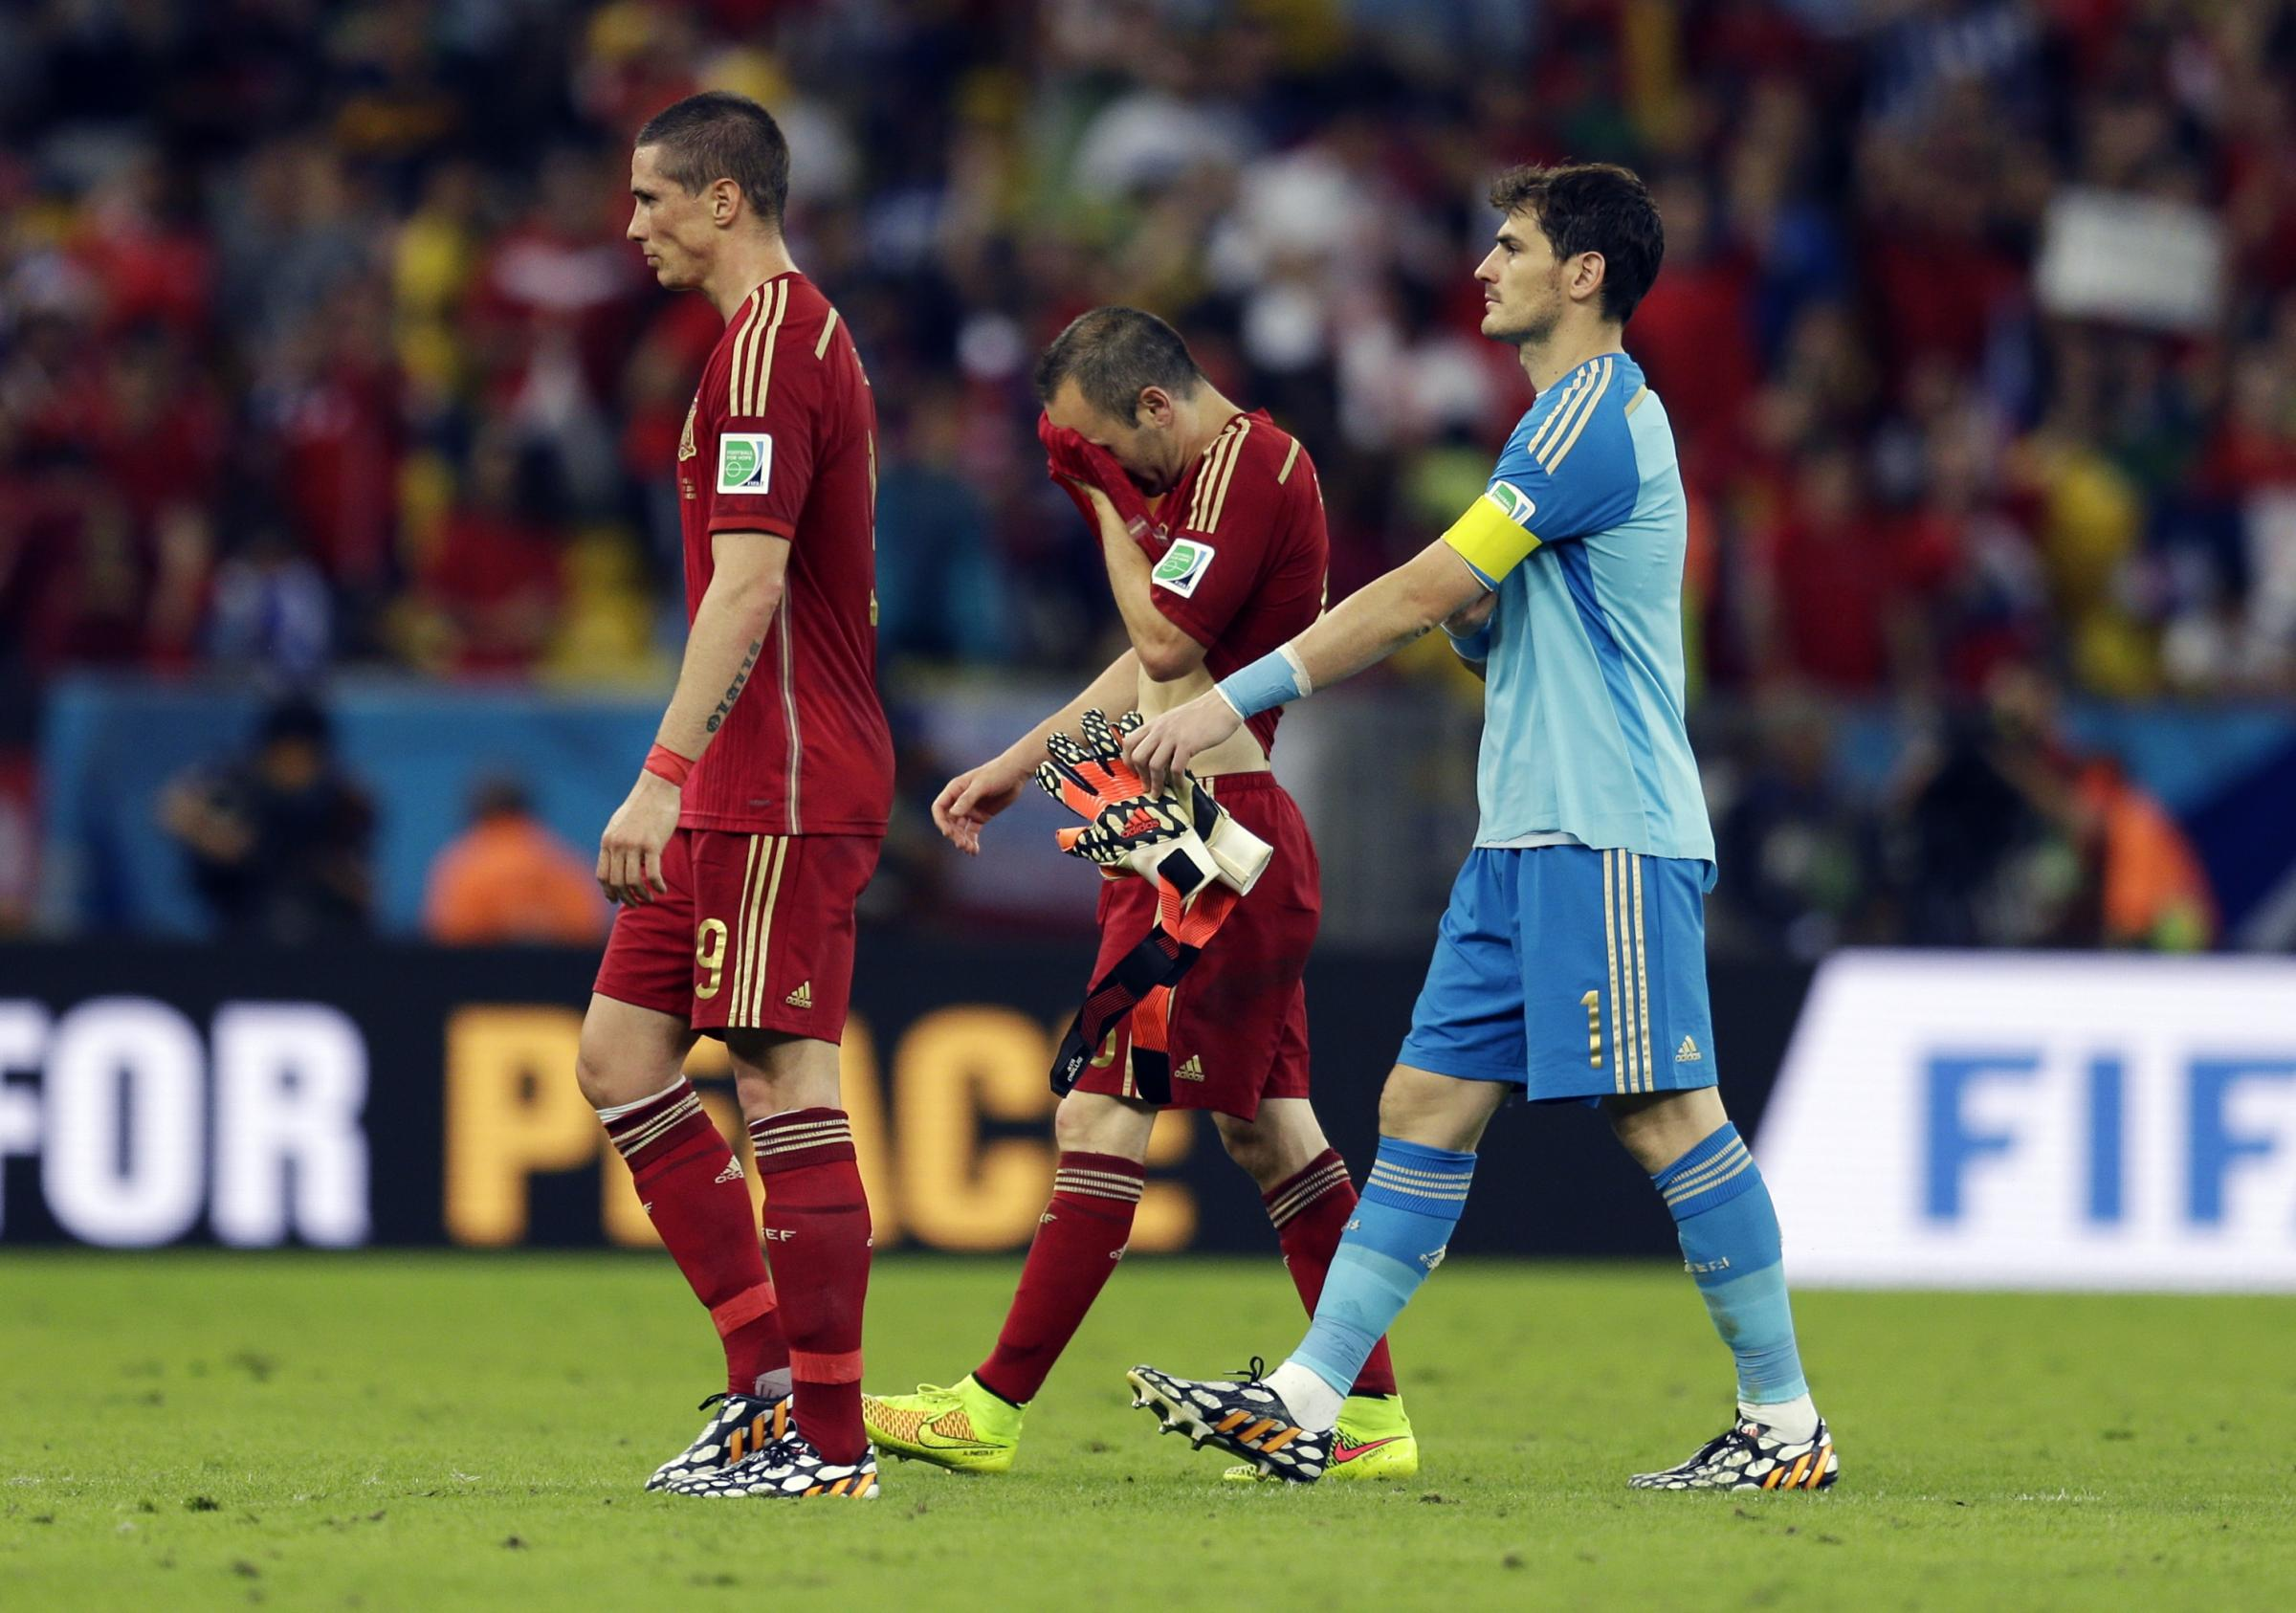 From left, Spain's Fernando Torres, Andres Iniesta and goalkeeper Iker Casillas walk off the pitch following their group B World Cup soccer match between Spain and Chile at the Maracana Stadium in Rio de Janeiro, Brazil